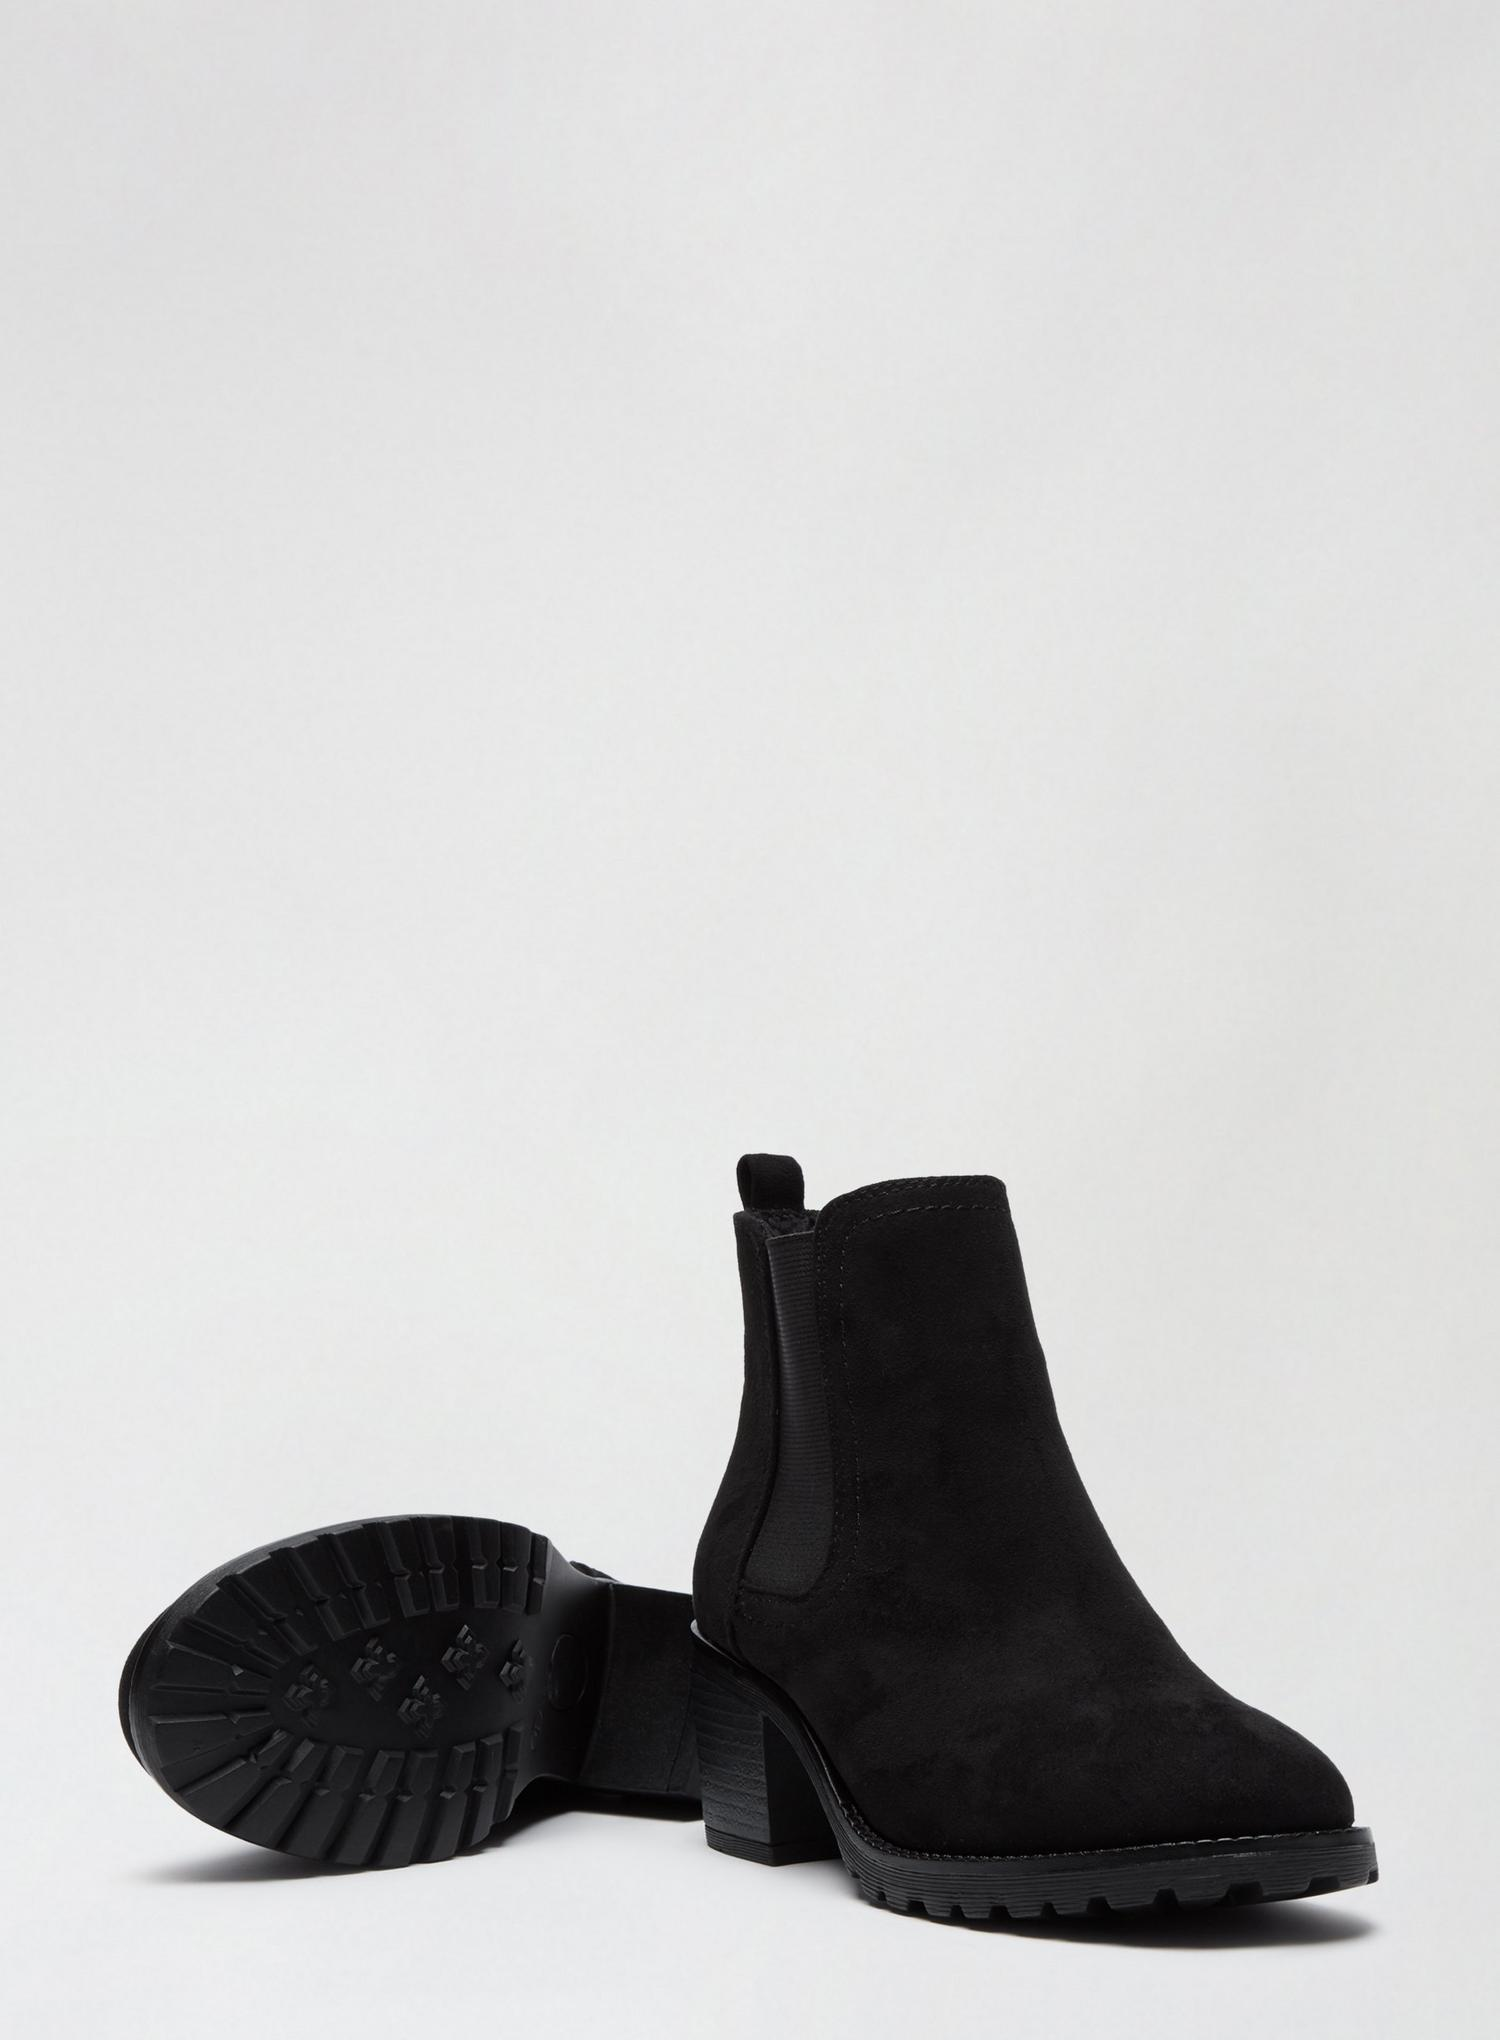 105 Black Ami Chelsea Boots image number 4